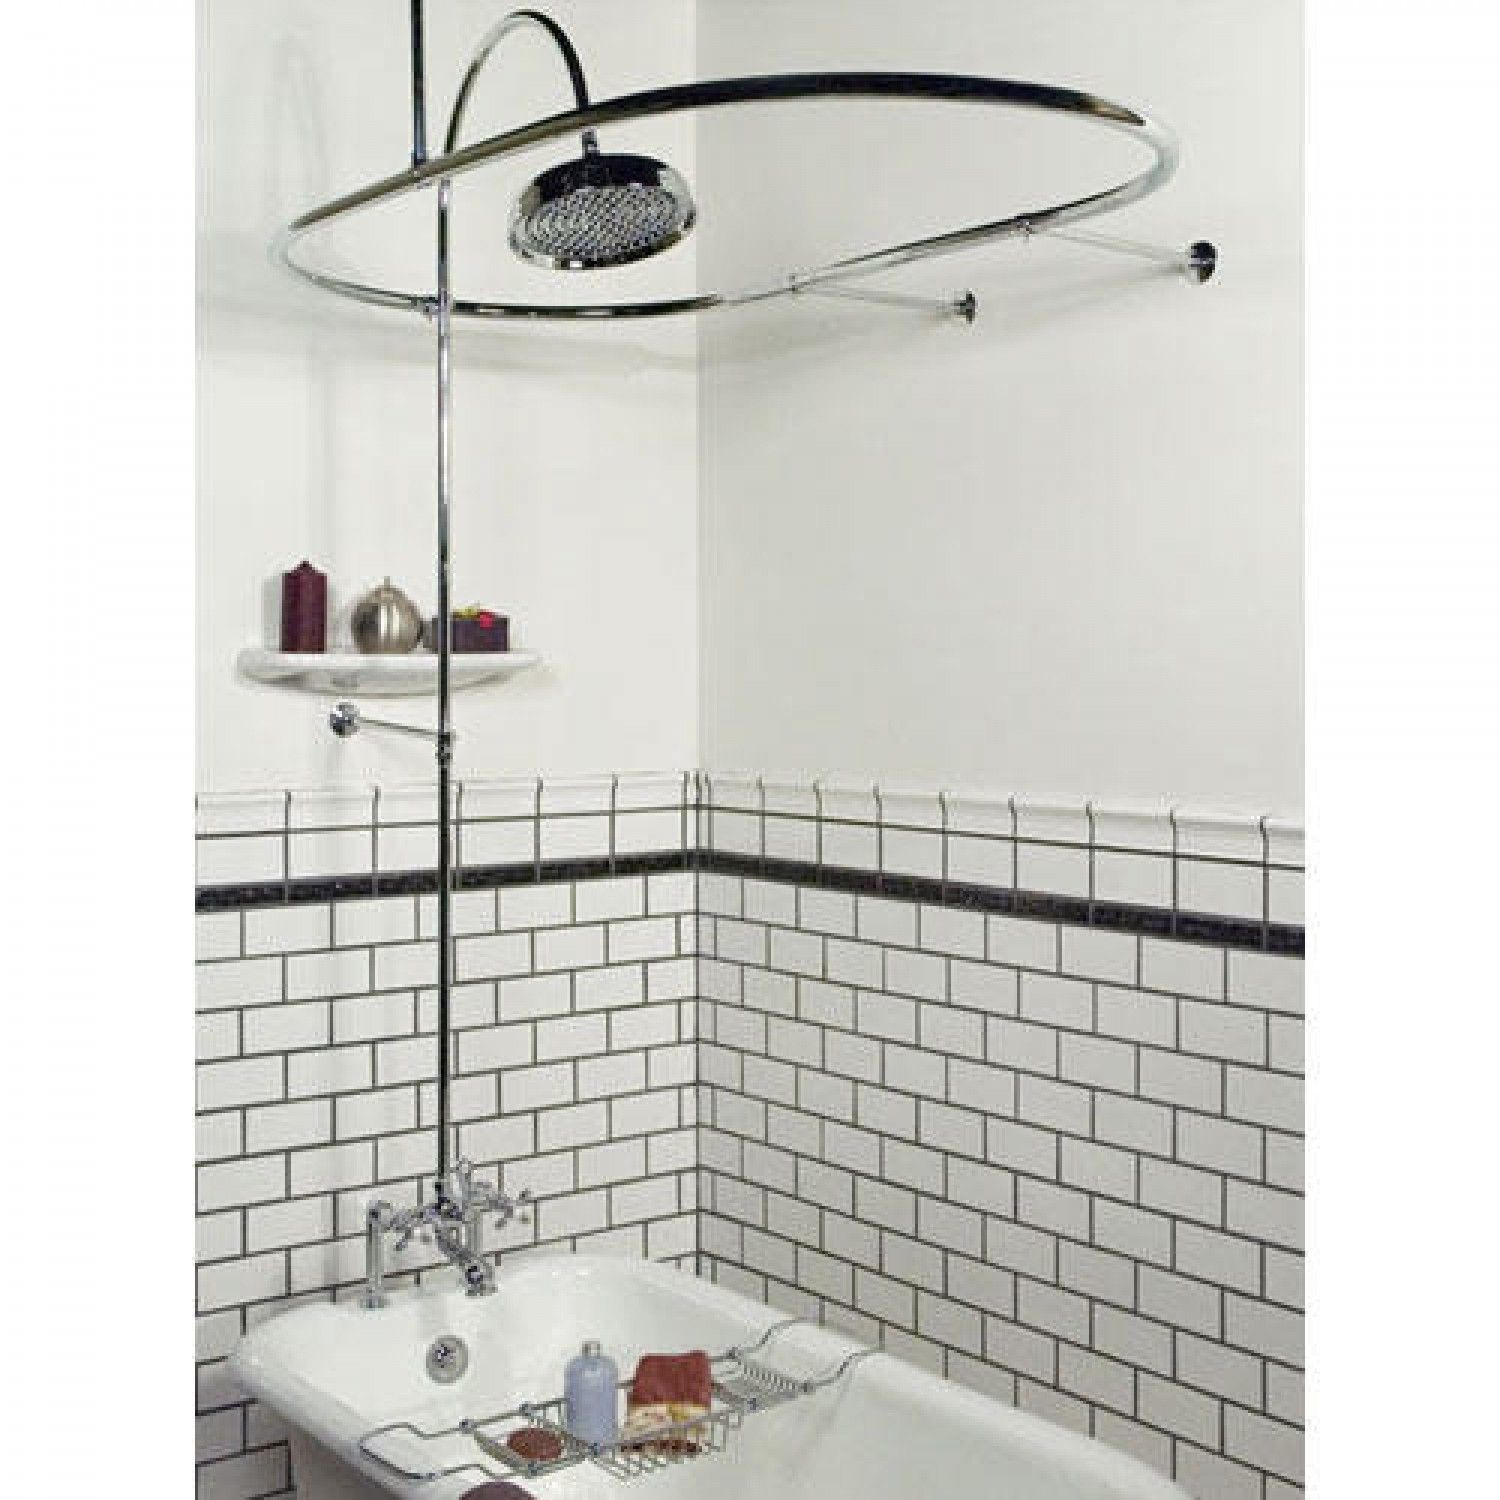 clawfoot tub shower enclosure kit. Sheffield Deck Mount Hotel Style Shower Conversion Kit  Clawfoot Tub Kits